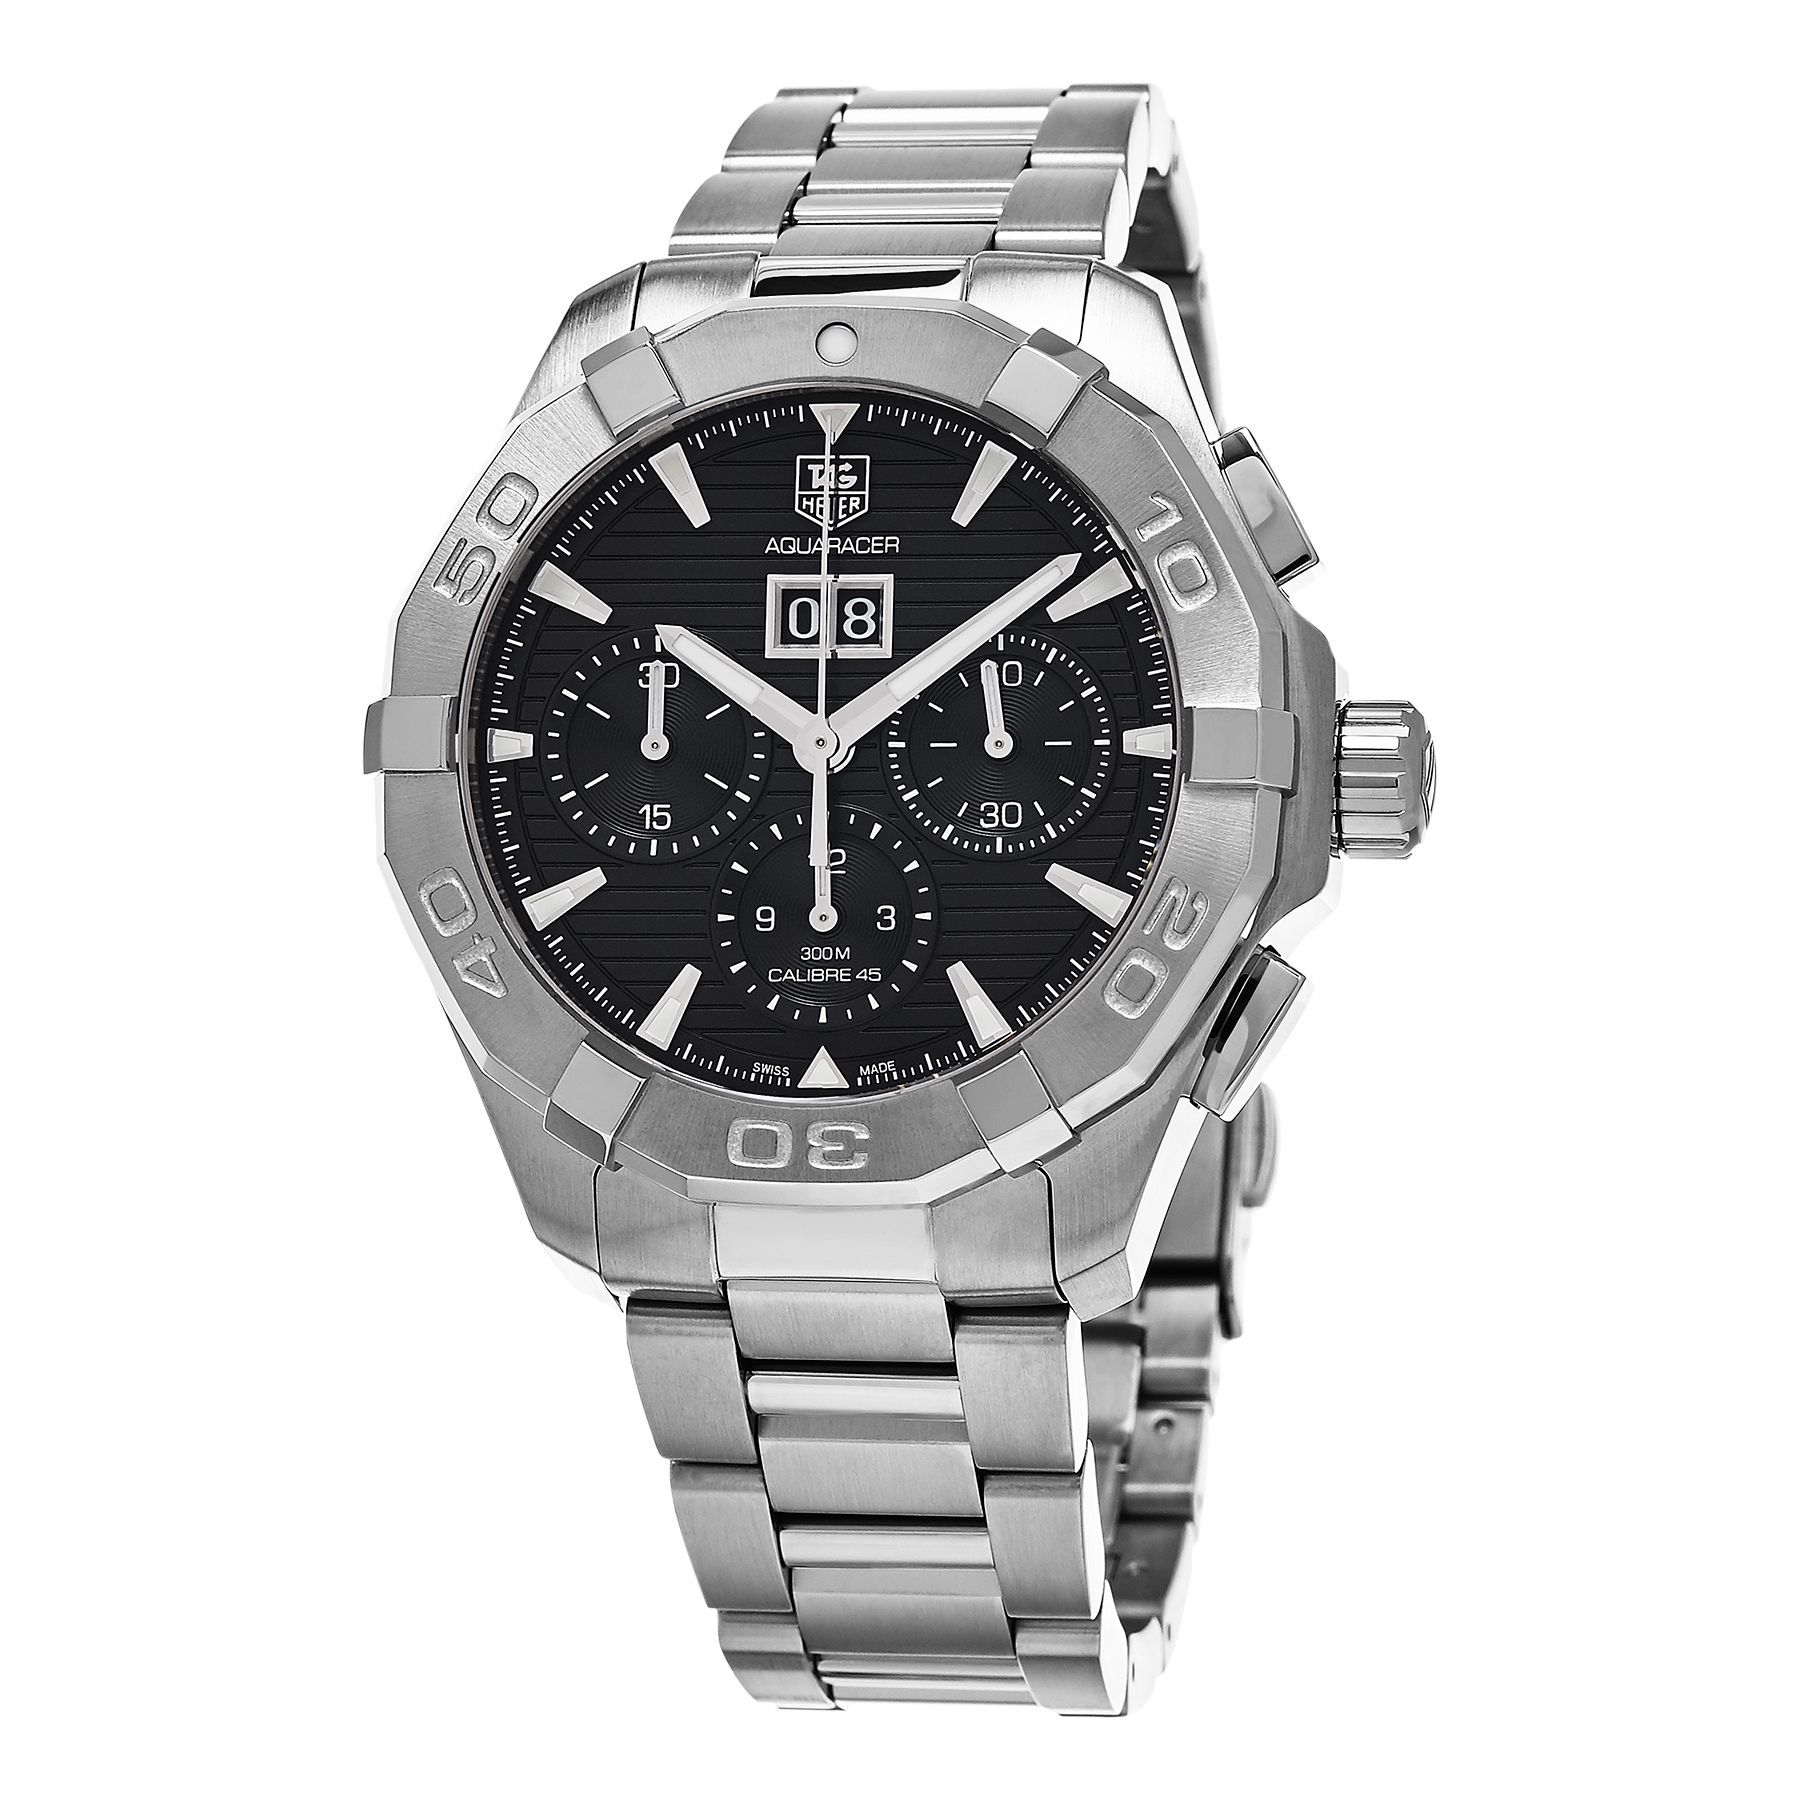 Tag Heuer Men's CAY211Z.BA0926 '300 Aquaracer' Dial Chronograph Swiss Automatic Watch